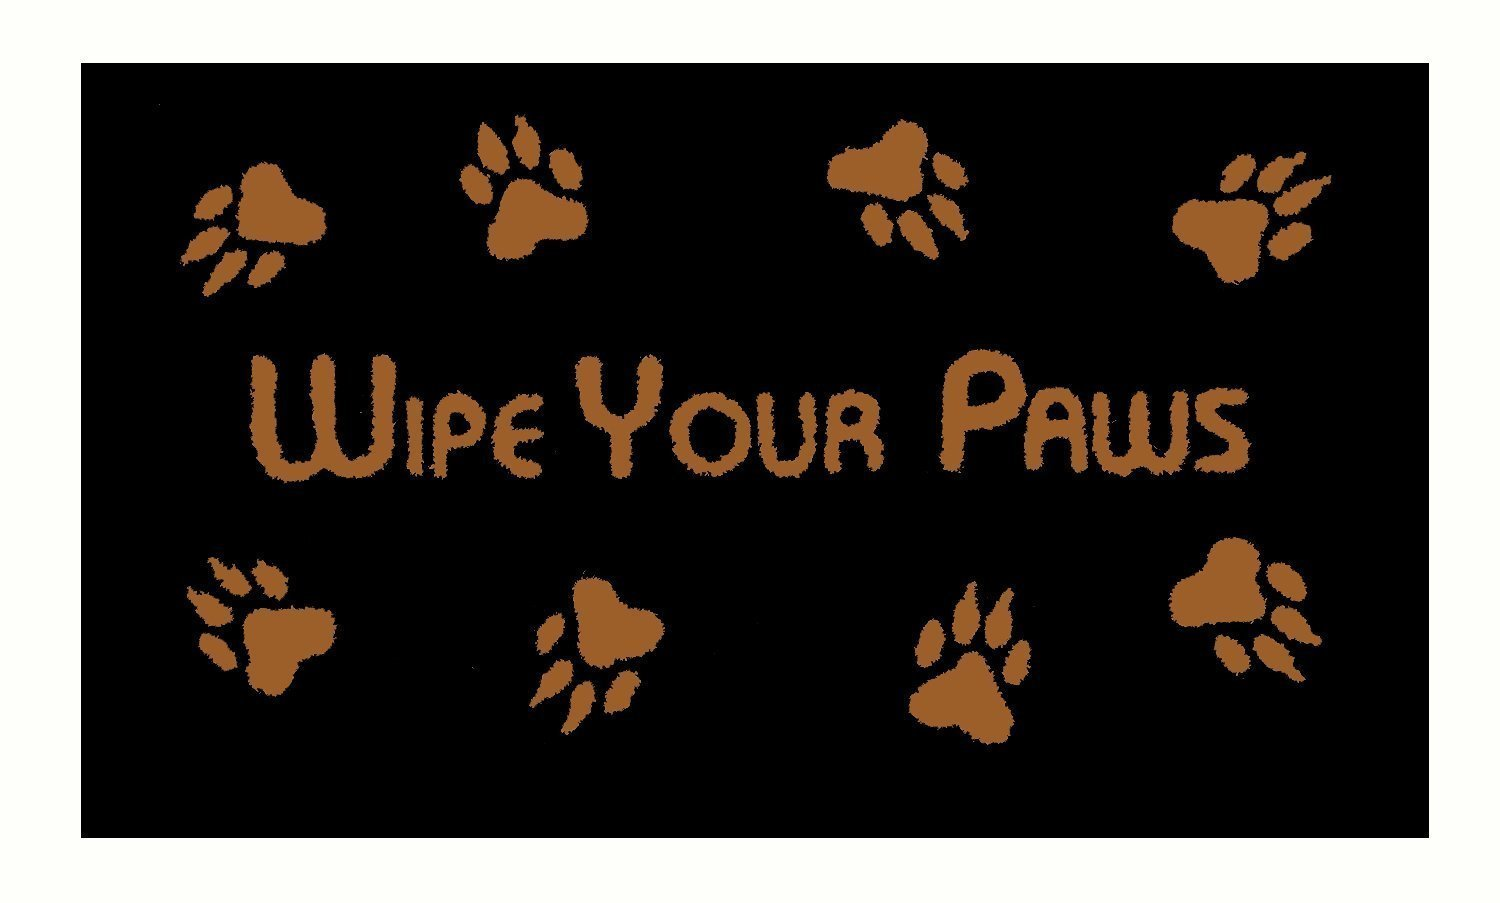 Animal Doormats With Wipe Your Paws Print Mats Non Slip Backing Indoor Outdoor Welcome For Home Mat (18x30in)